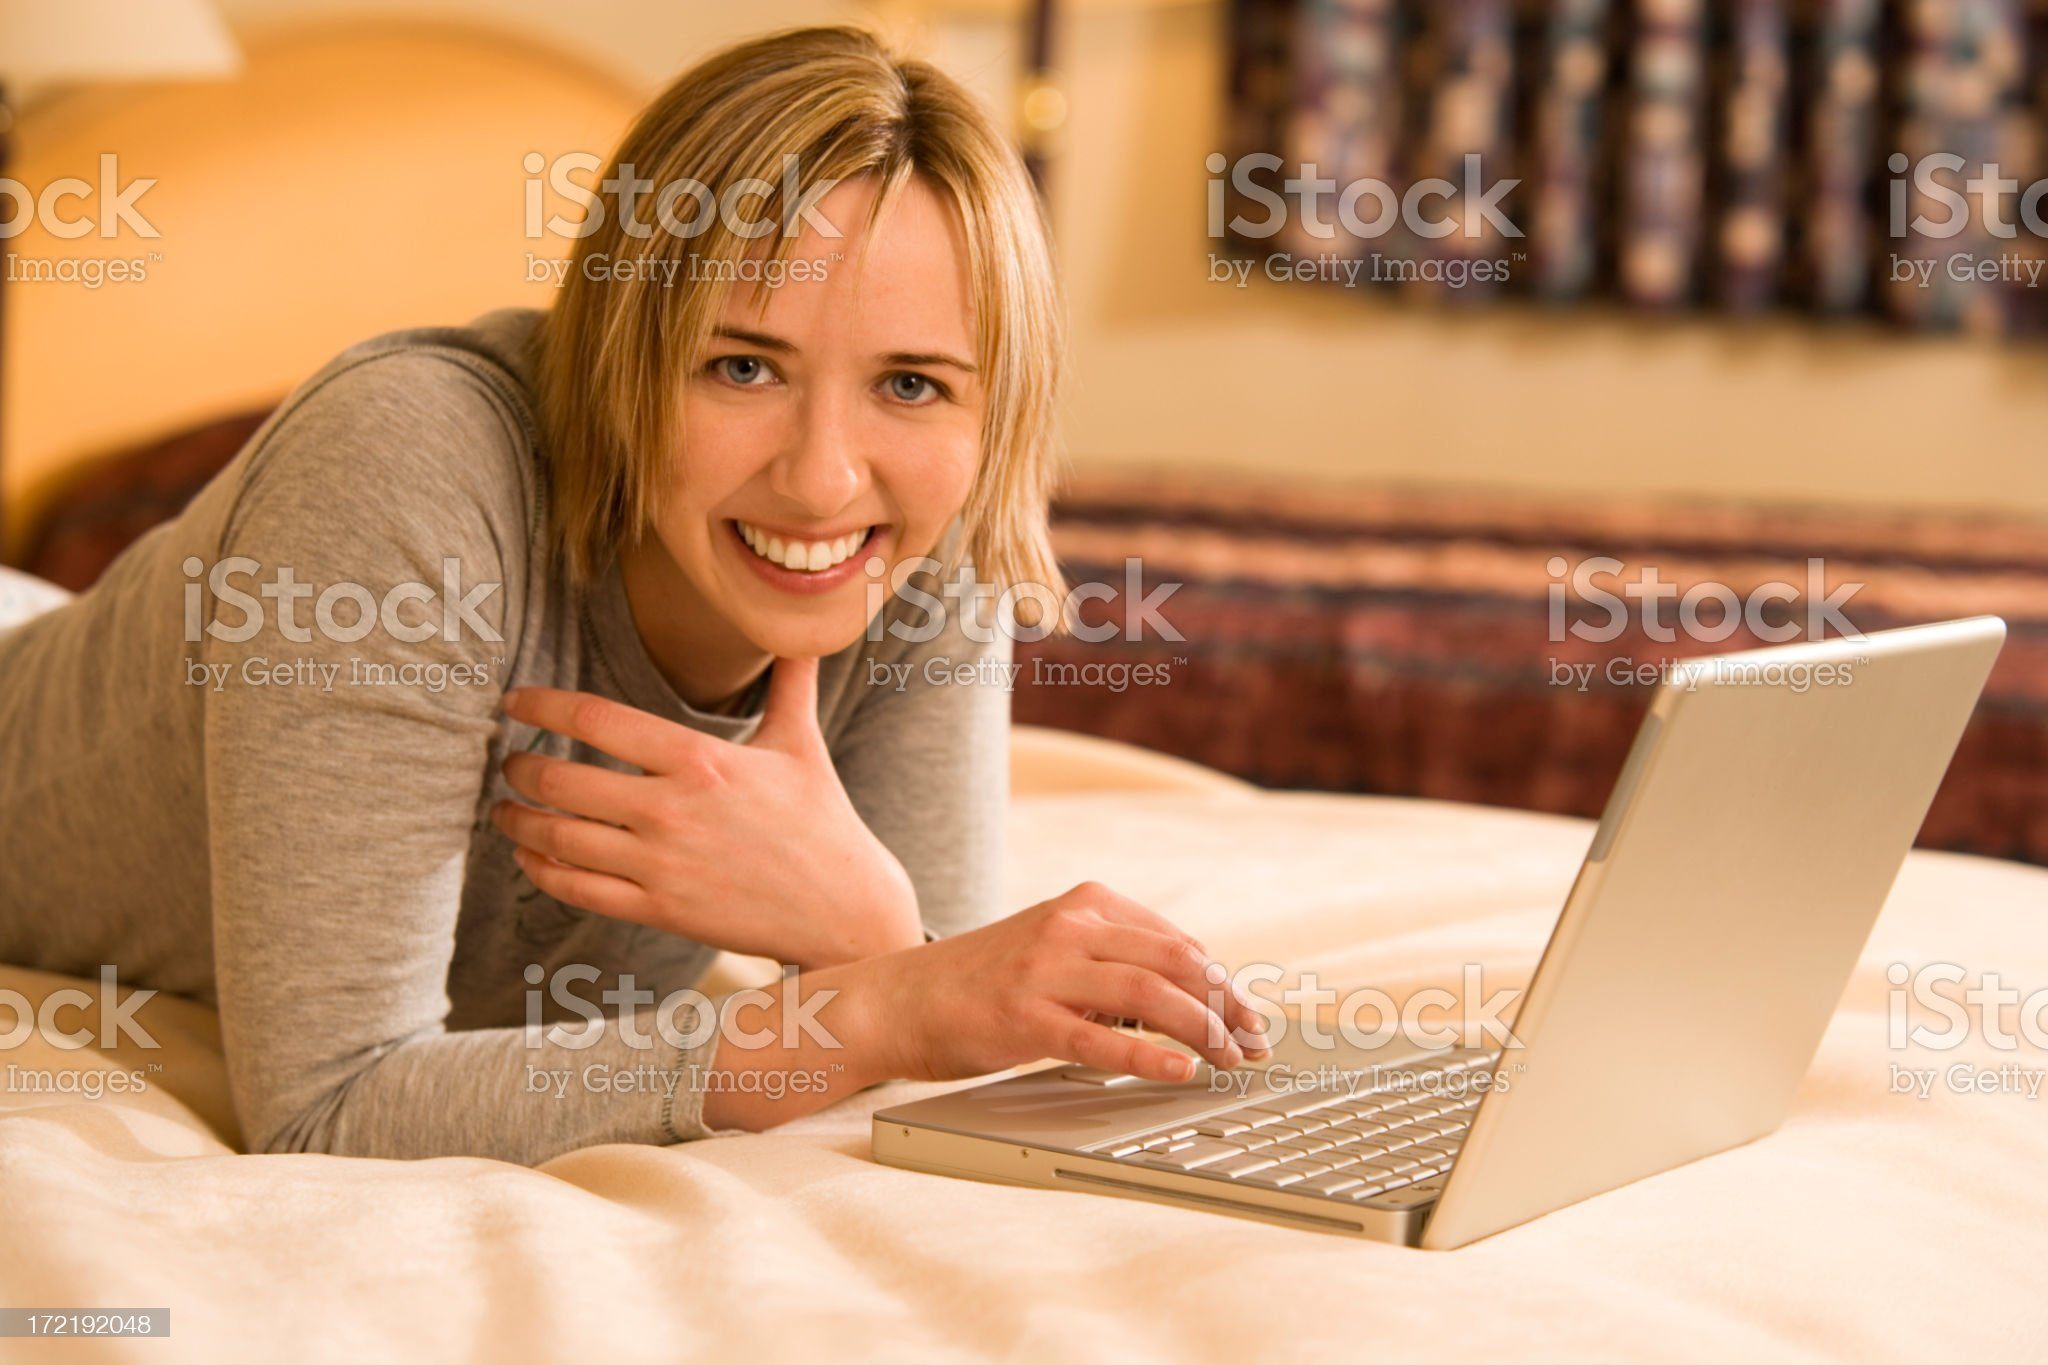 Using Lap Top in Hotel Room royalty-free stock photo